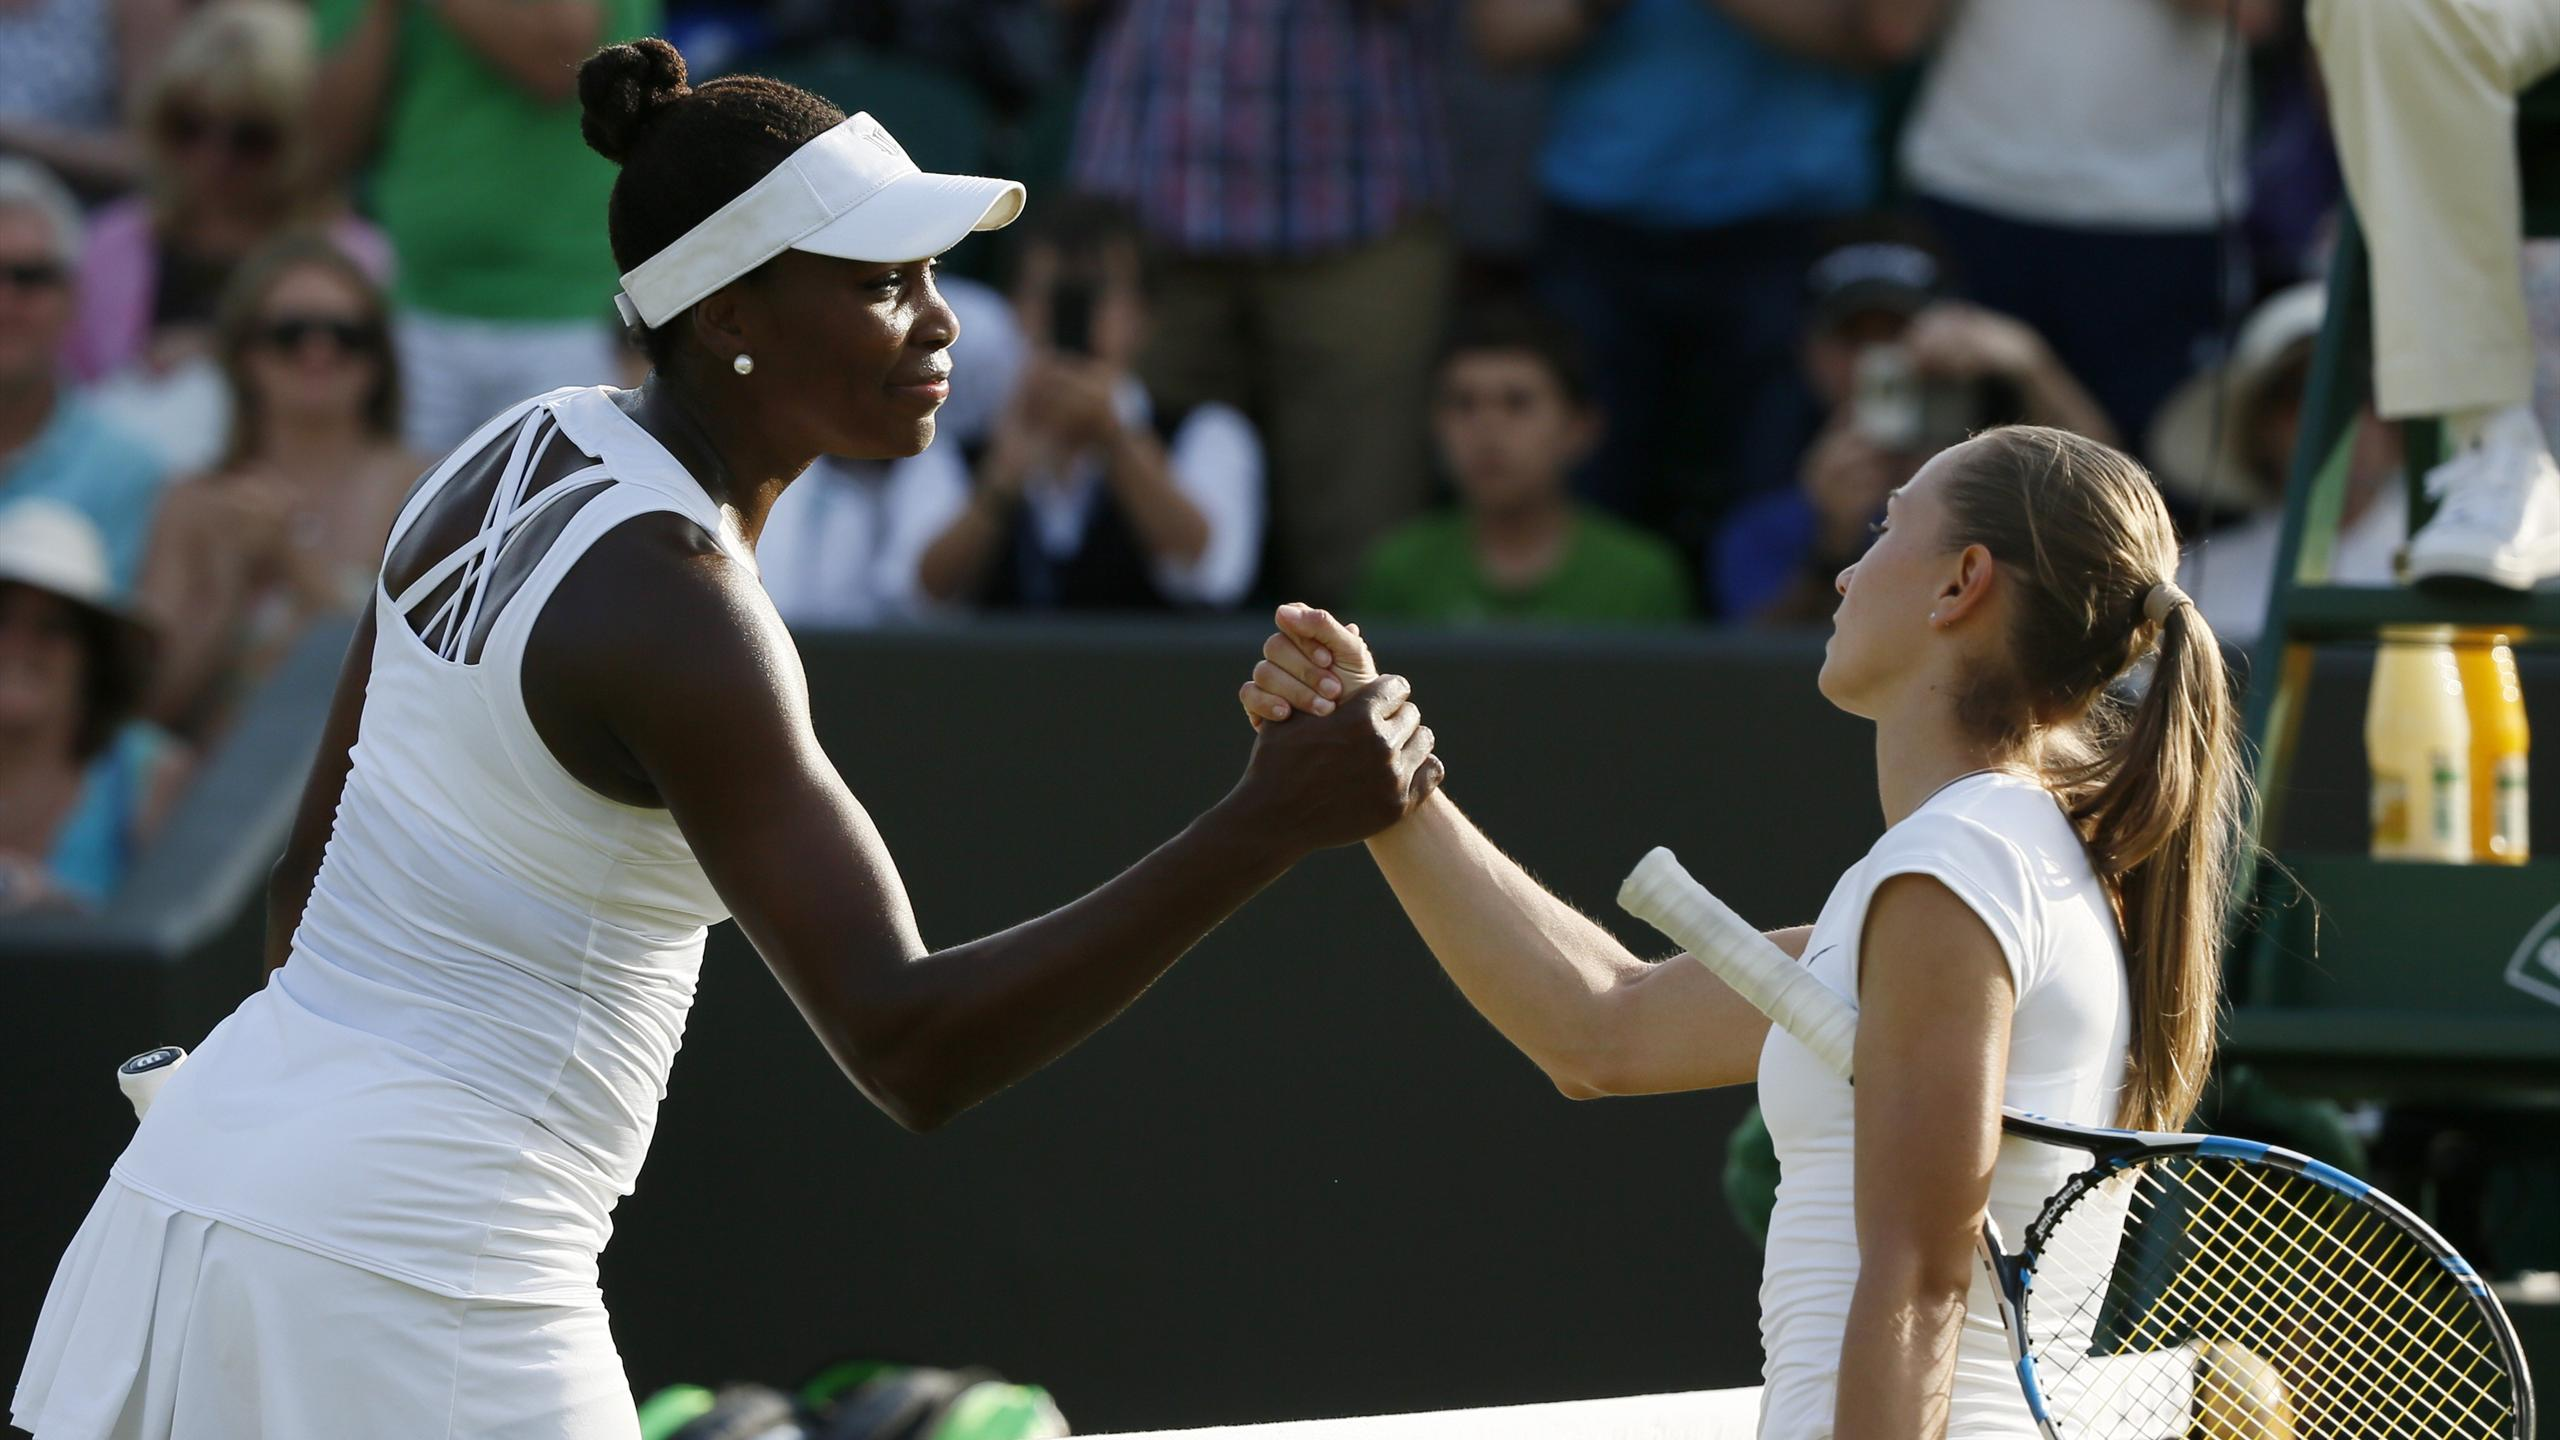 Venus Williams has eased into the fourth round